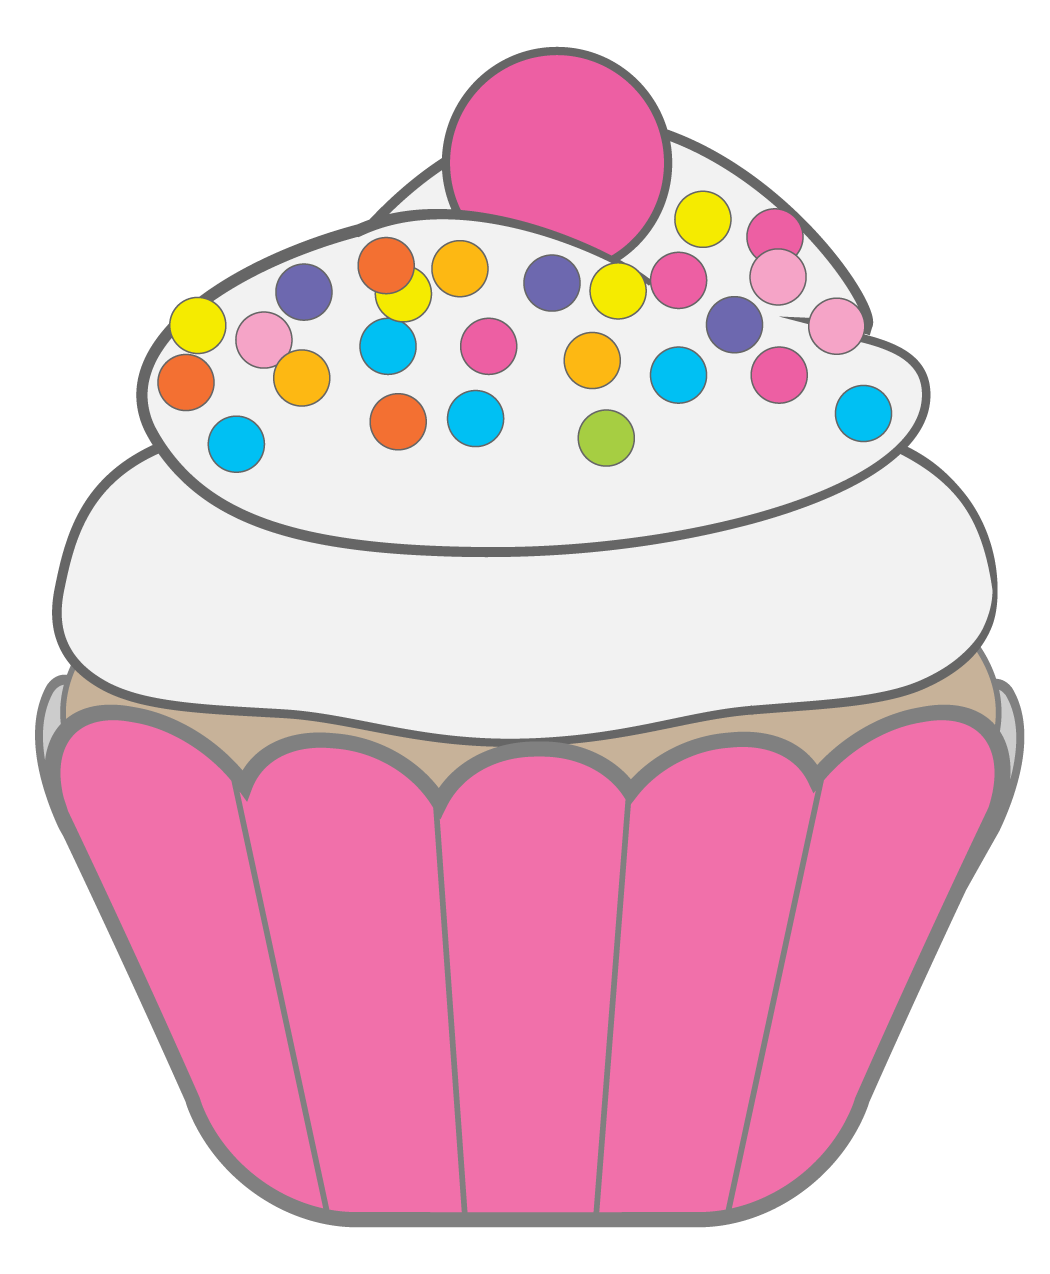 Free Cake Clip Art Pictures - Clipartix